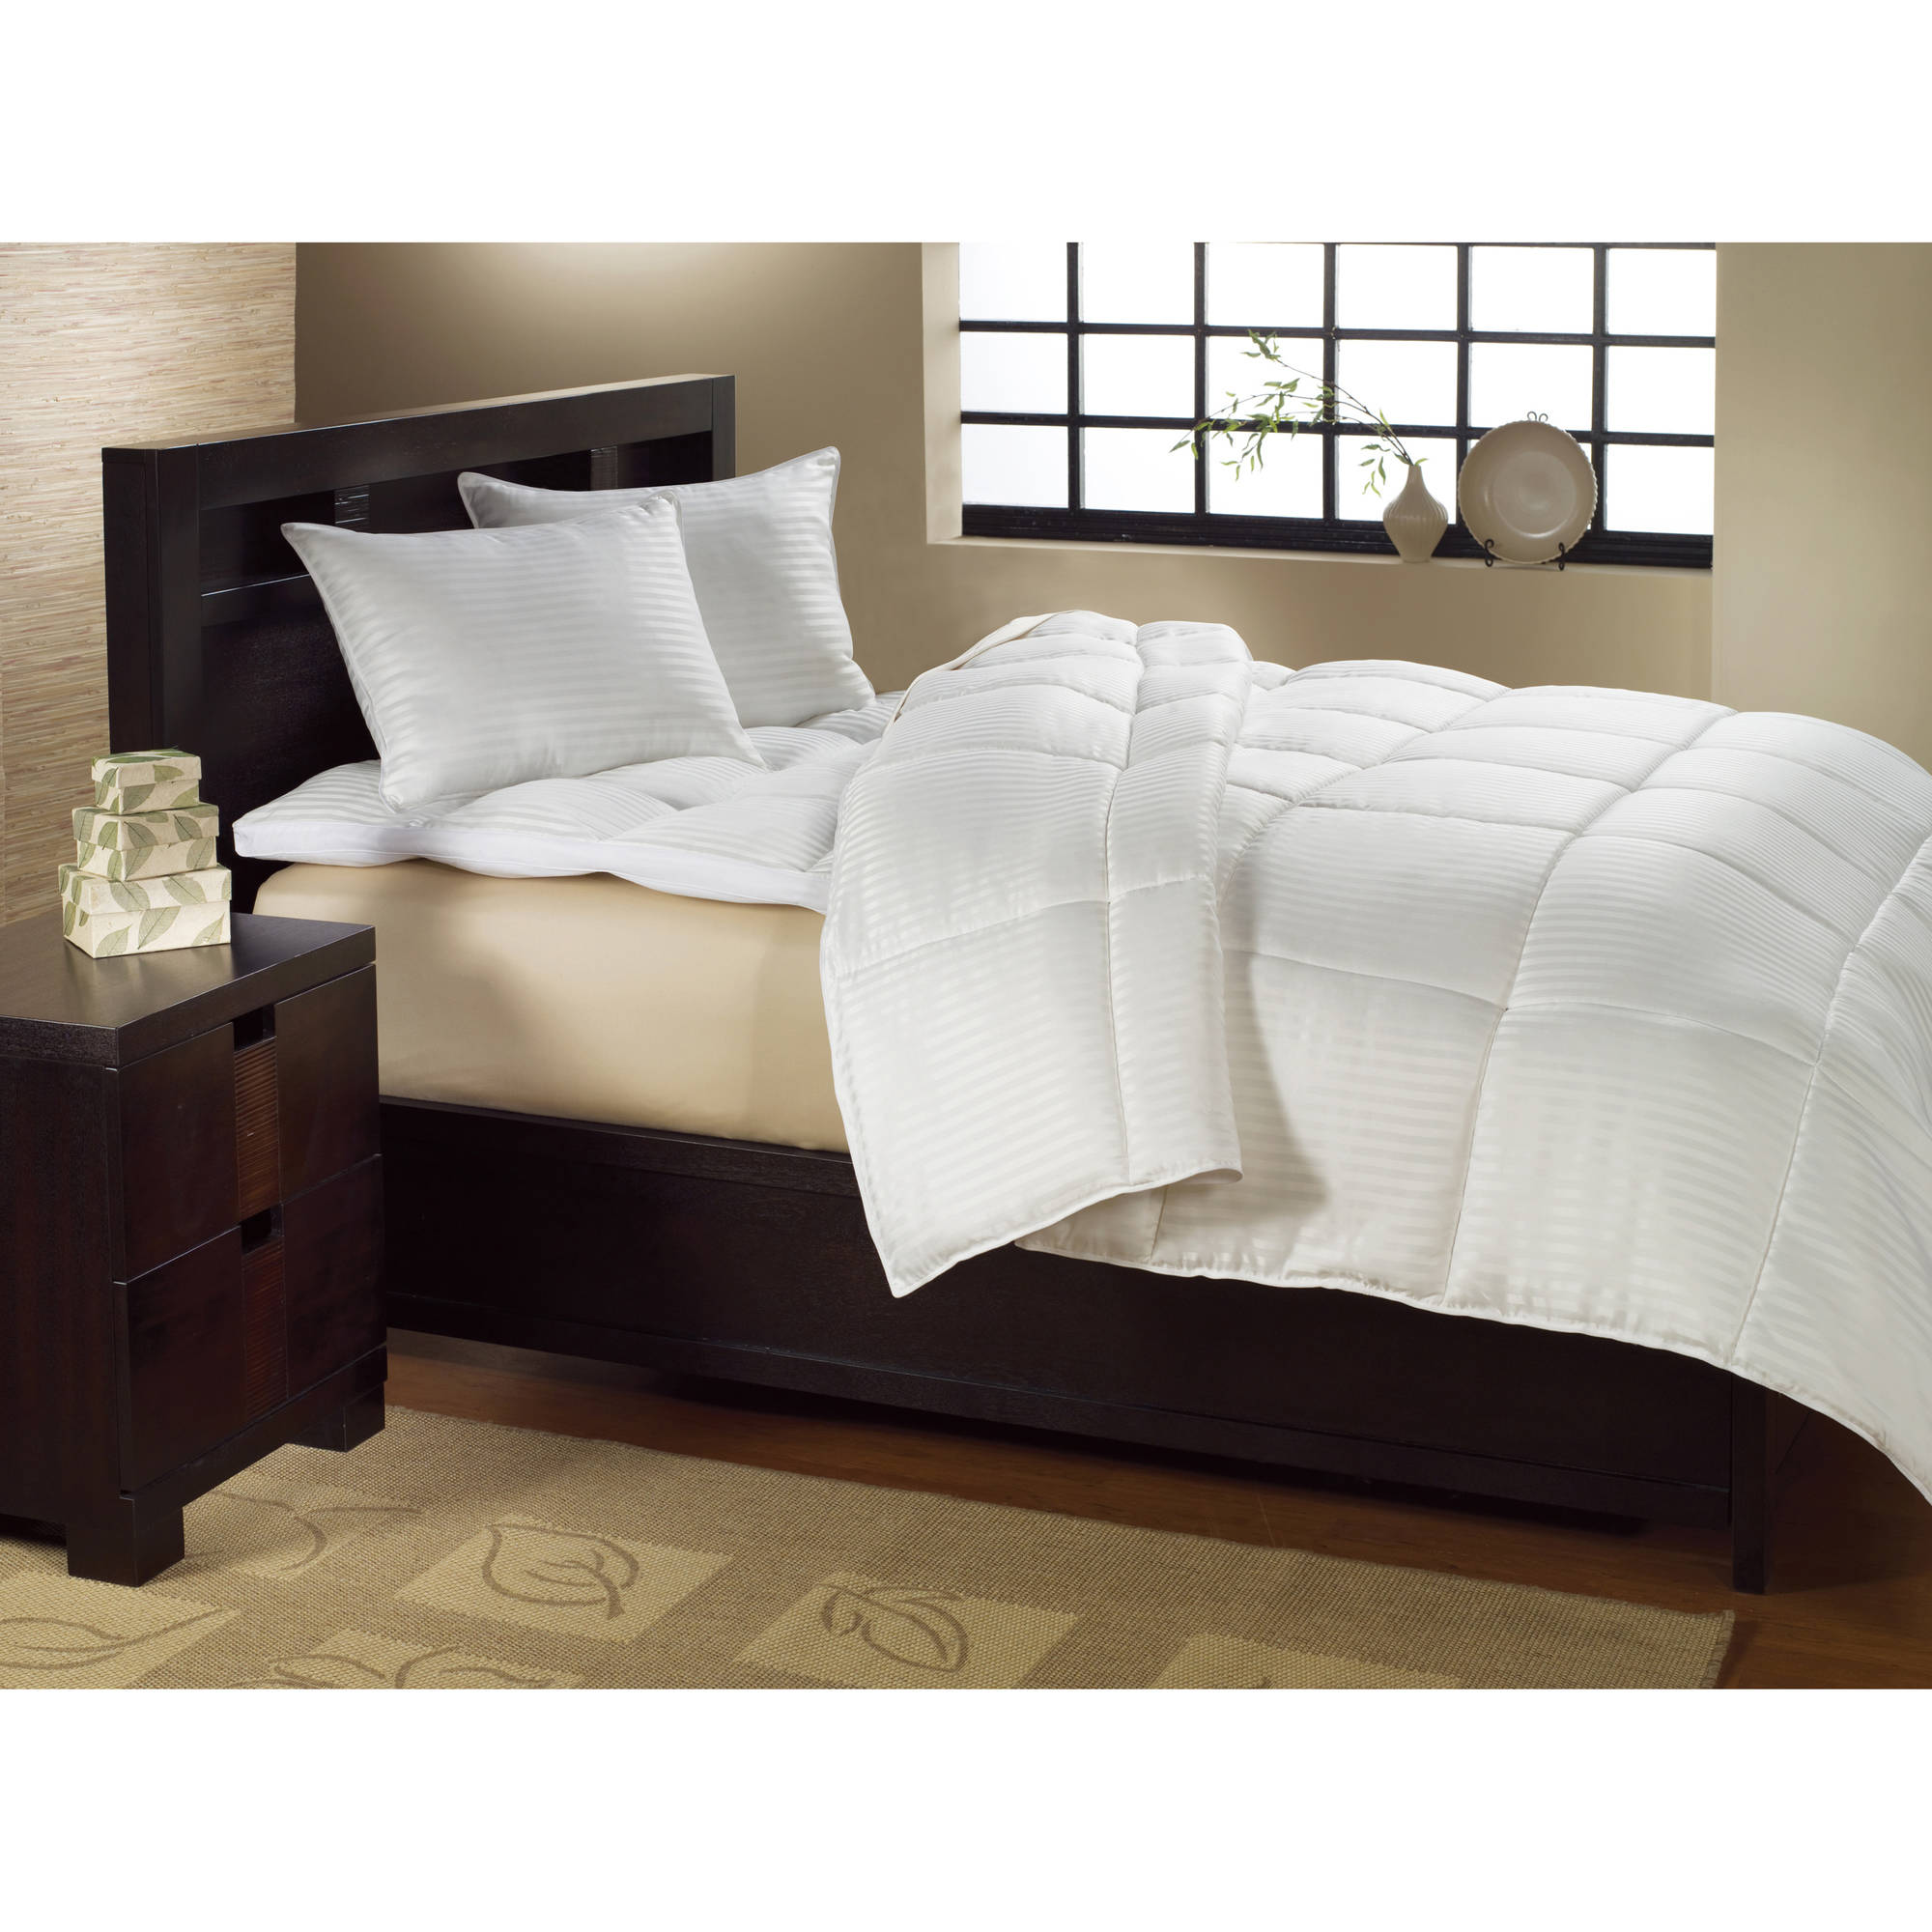 Better Homes and Gardens Down Fusion Year Round Warmth Comforter, Multiple Sizes